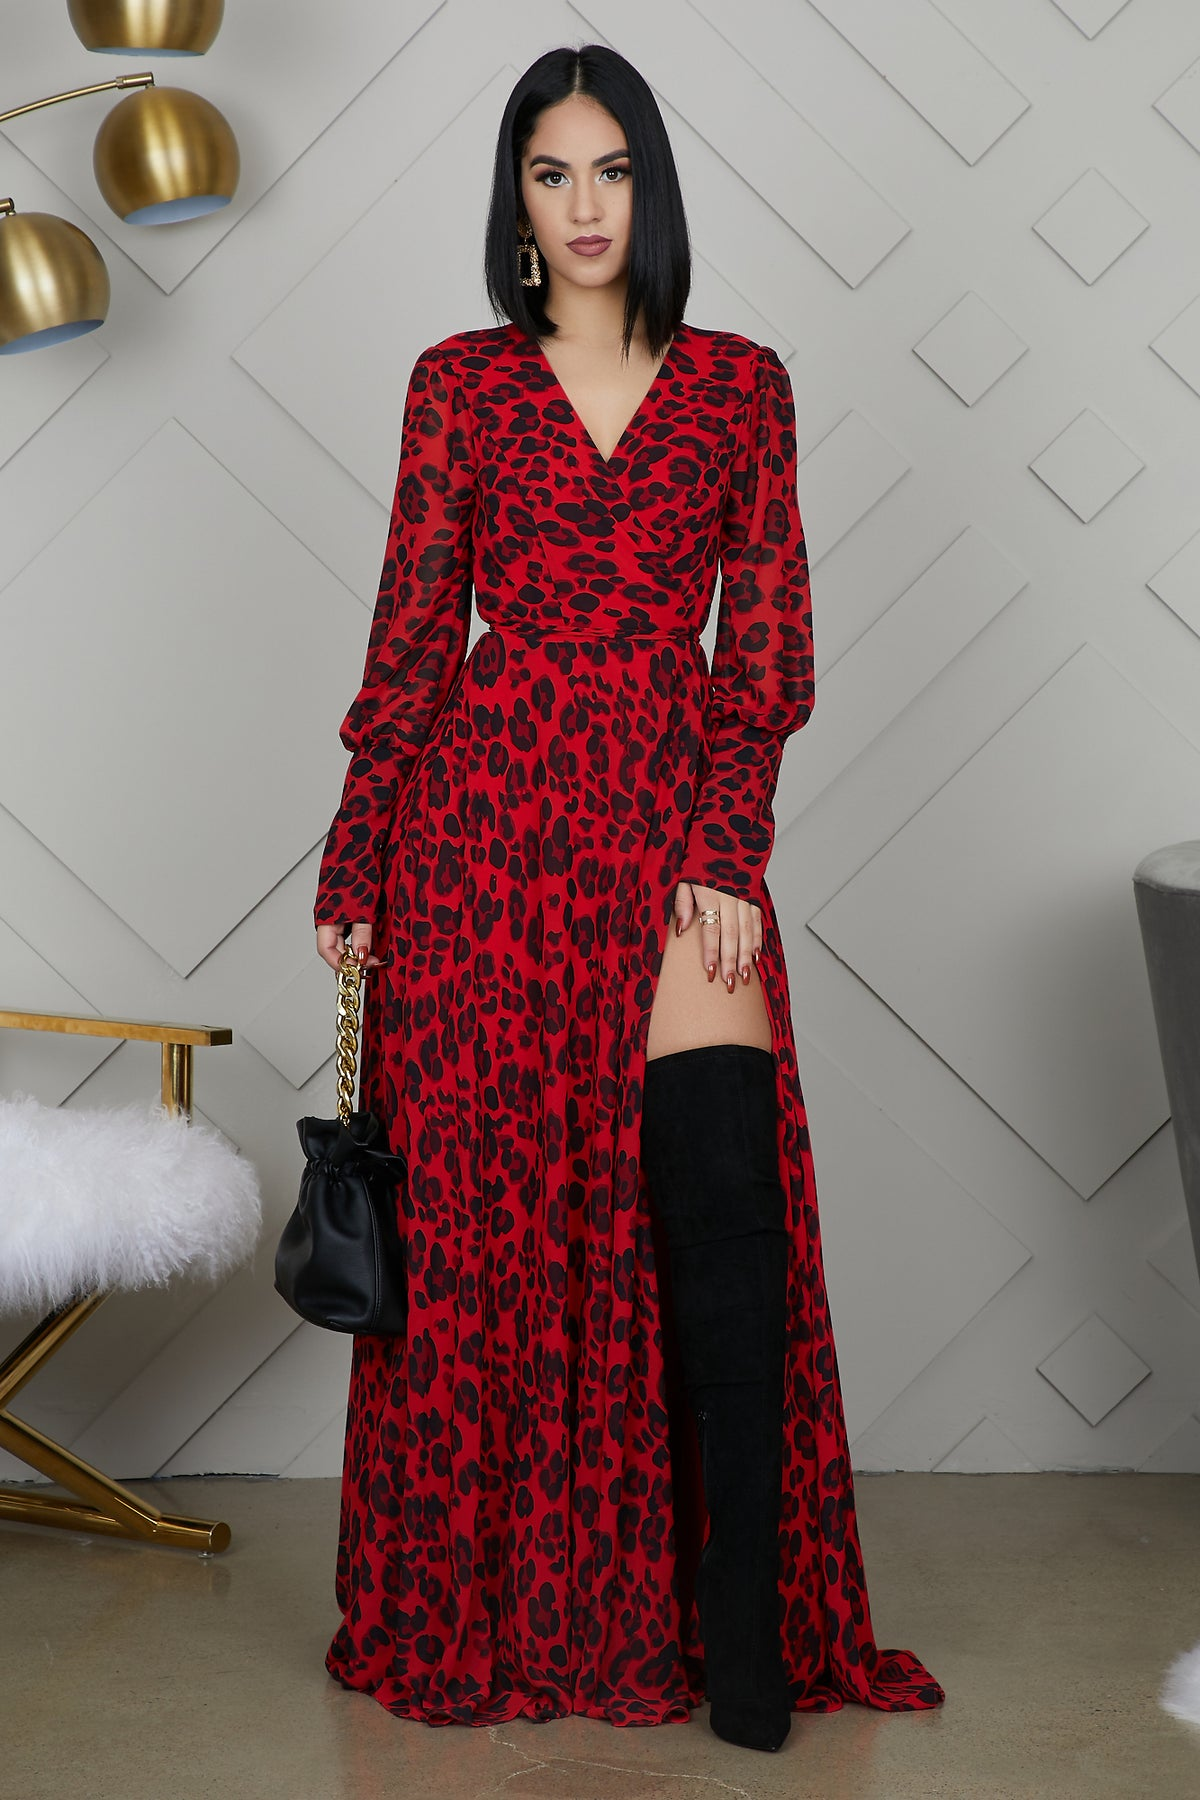 High Slit Leopard Maxi Dress (Red)- PREORDER ONLY SHIPS OCTOBER 16TH